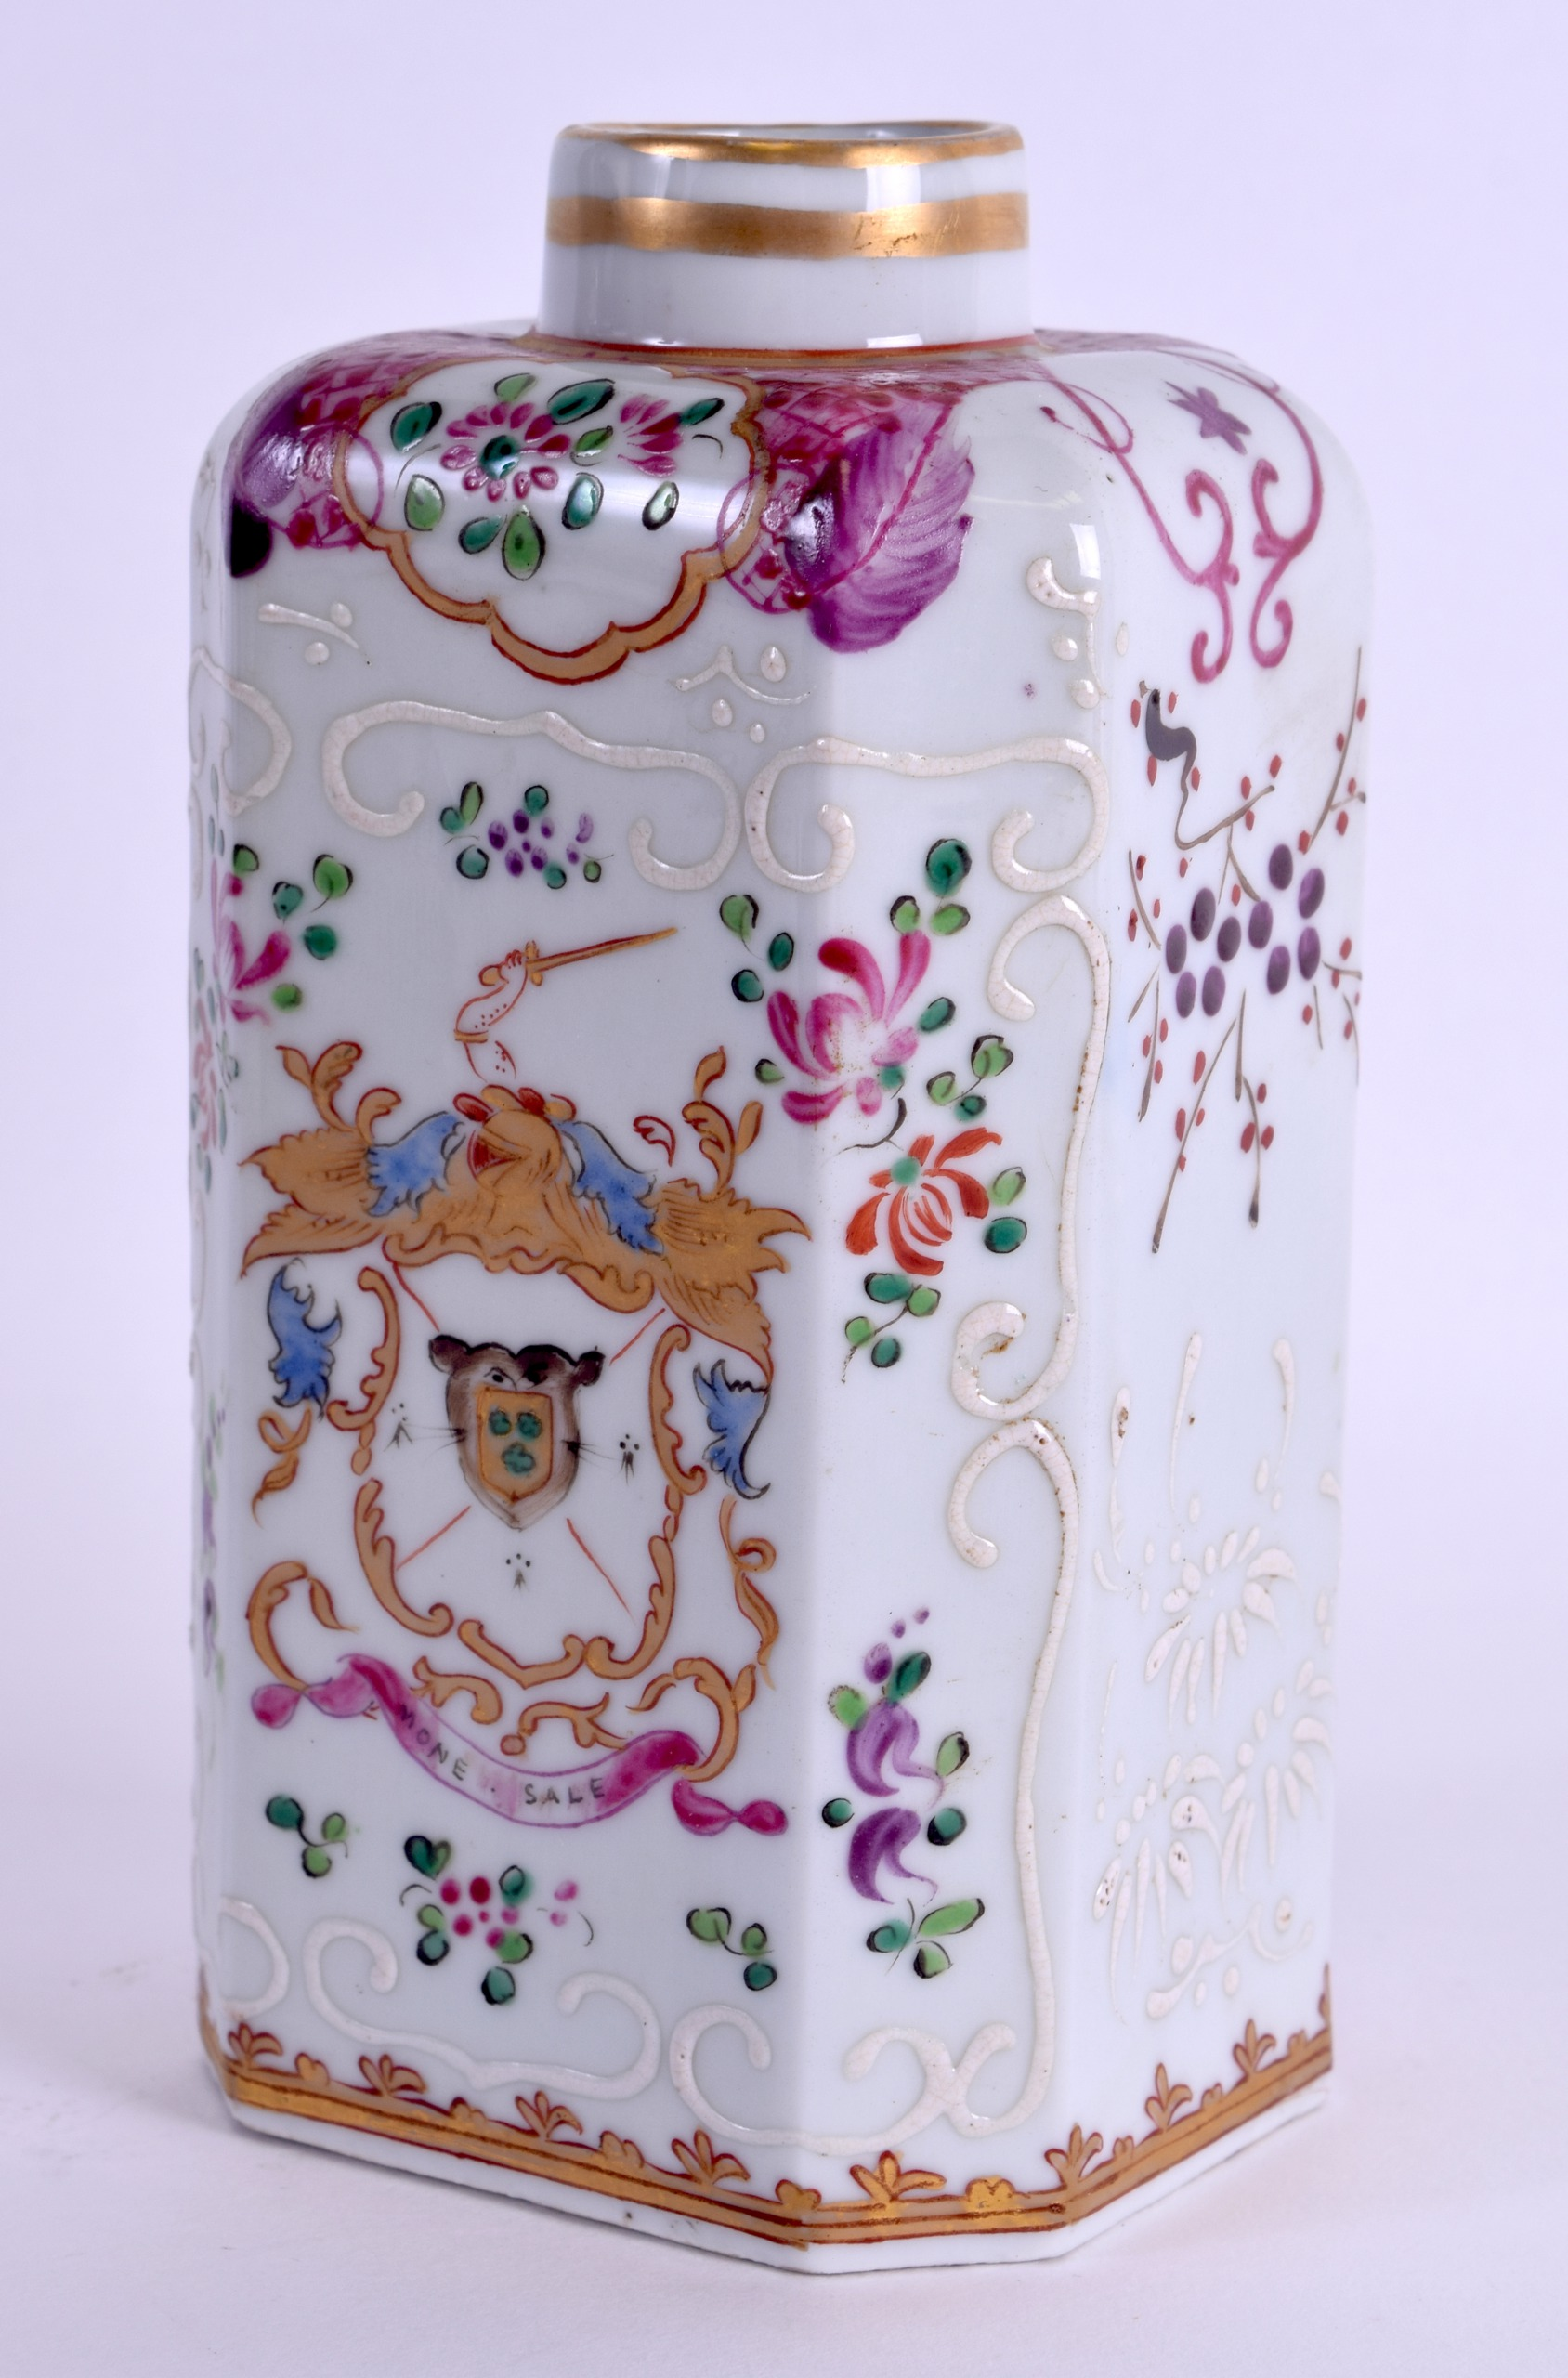 Lot 101 - A 19TH CENTURY FRENCH SAMSONS OF PARIS TEA CANISTER painted with armorials in the Chinese Export